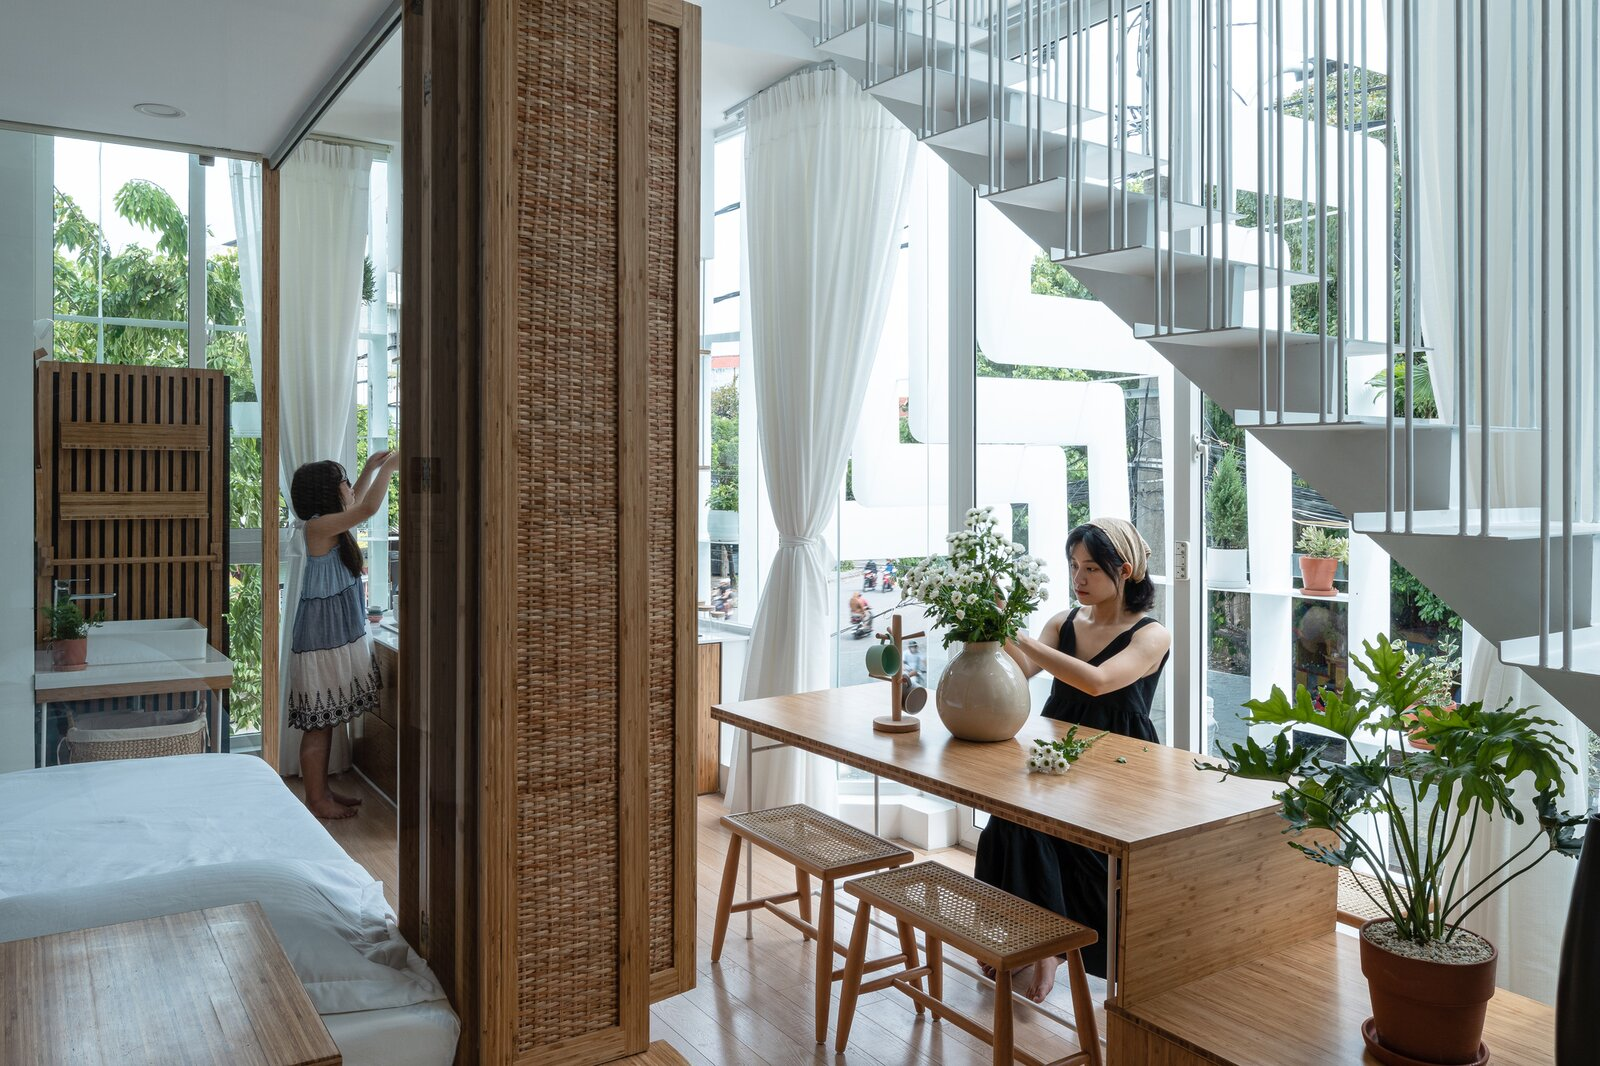 Living Room, Bench, Table, Ceiling Lighting, and Light Hardwood Floor  Photo 16 of 23 in A Translucent Tower in Vietnam Invites Visitors in for a Cup of Coffee